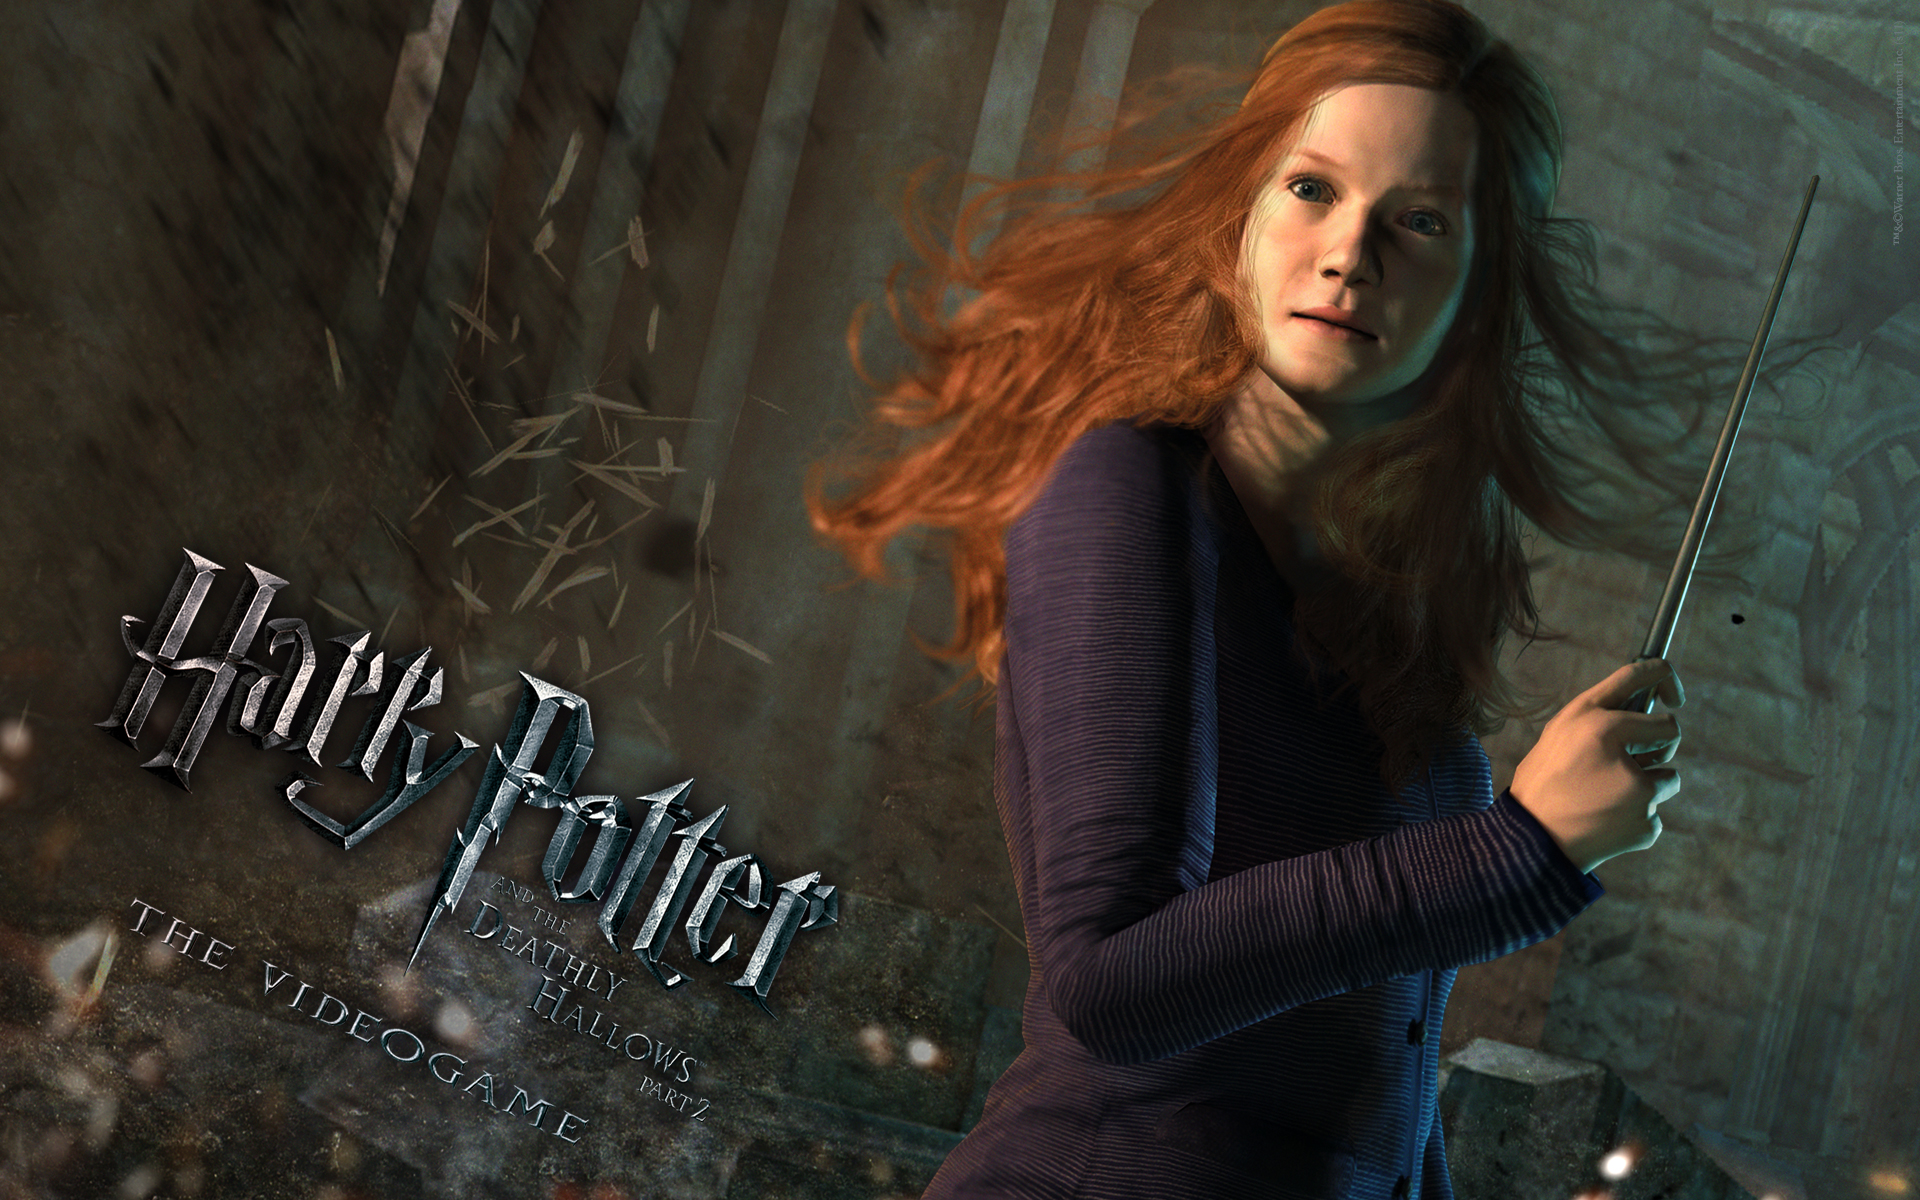 Ginny Wallpaper from Harry Potter and the Deathly Hallows: Part 2 The Video Game